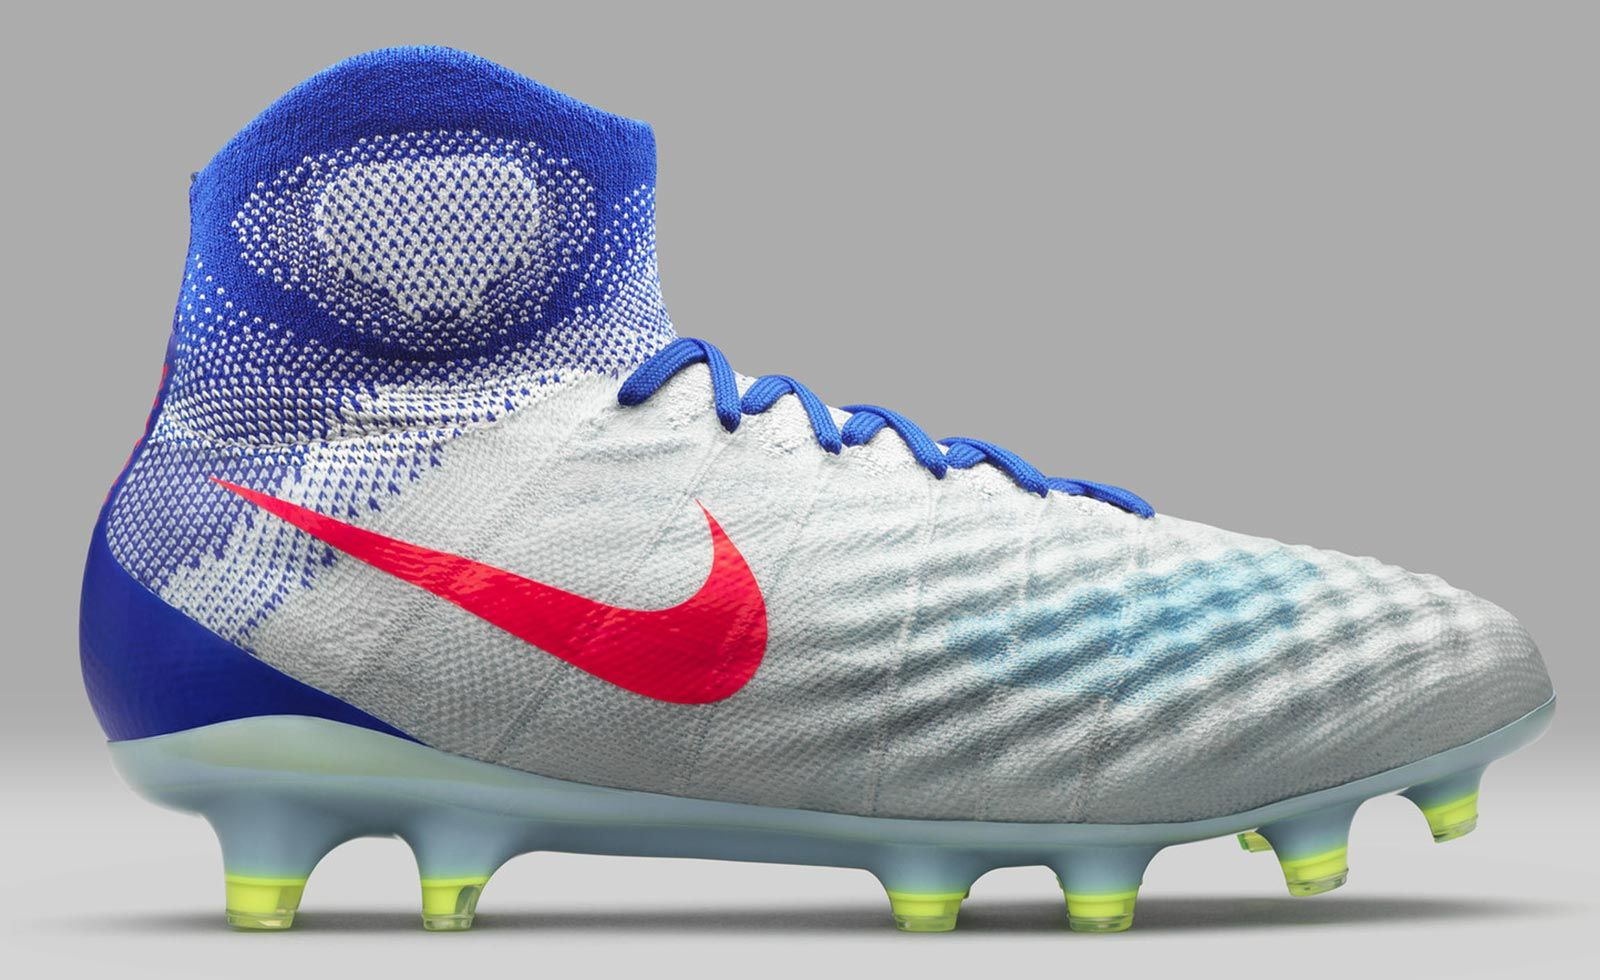 The new Nike Magista Obra 2 women's Olympics soccer boots introduce a  spectacular look in white